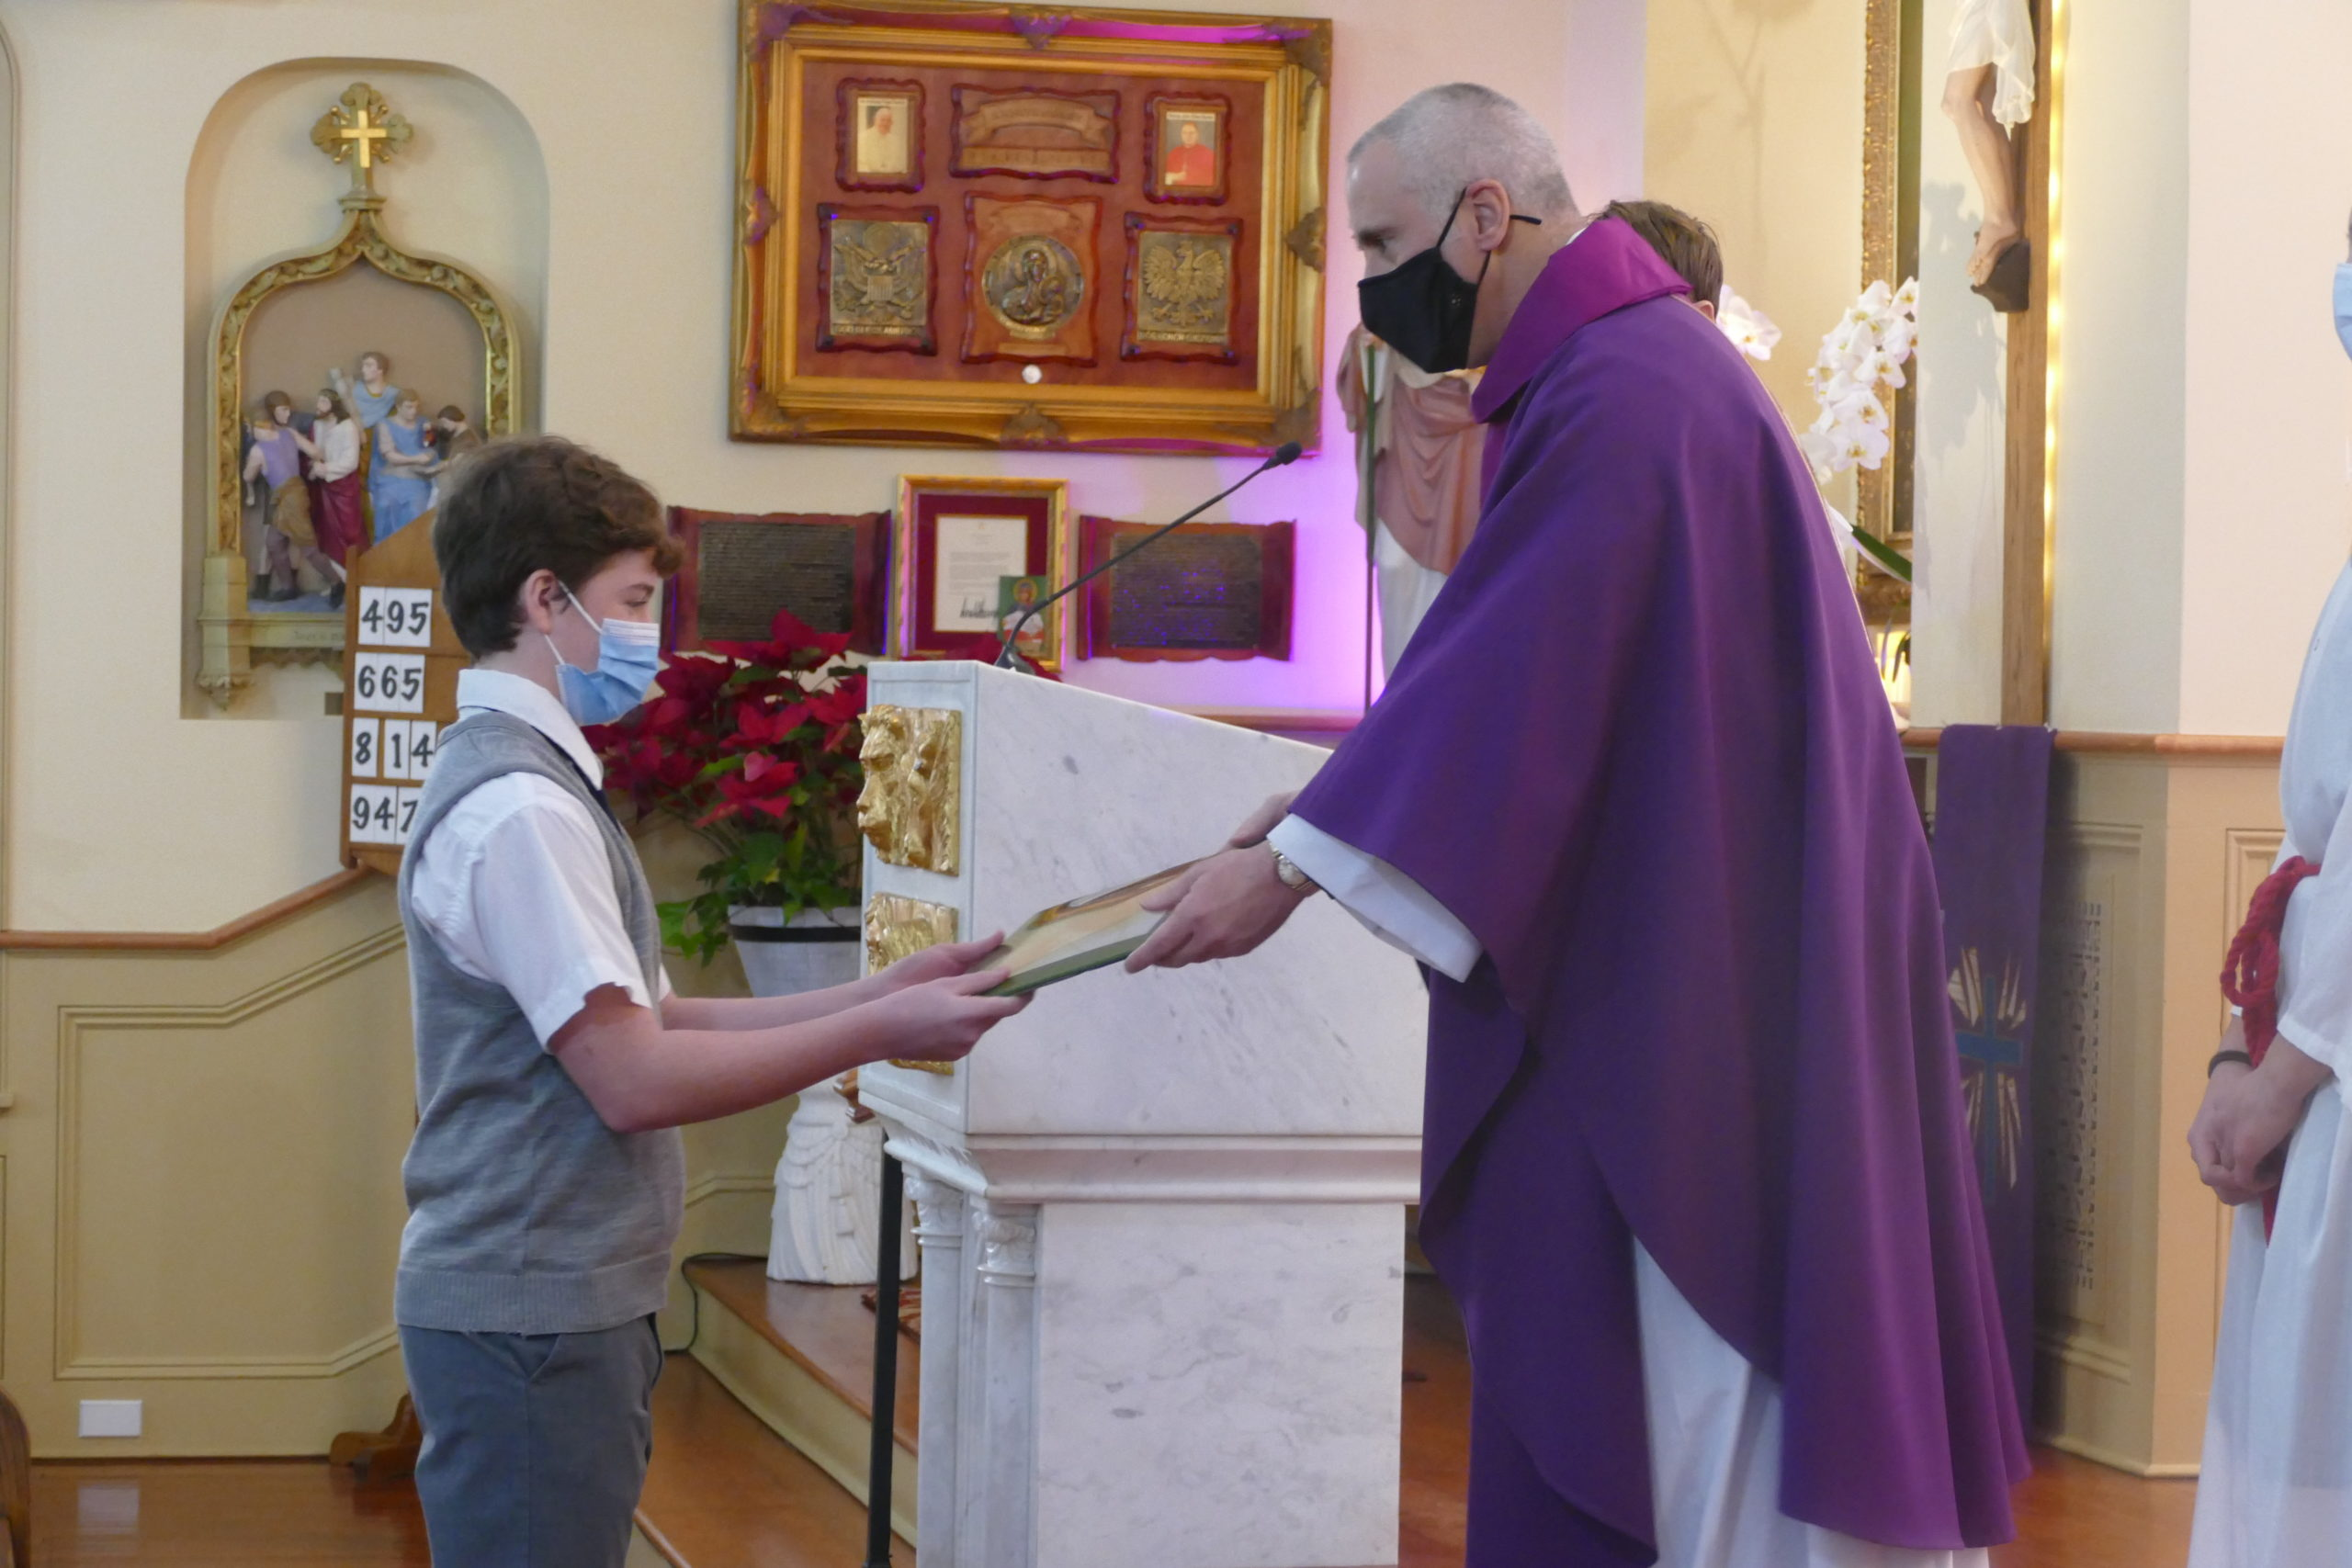 OLH Prep 8 student Jack Cantwell presents one of the offertory gifts to Father Maddaloni at the Lenten liturgy